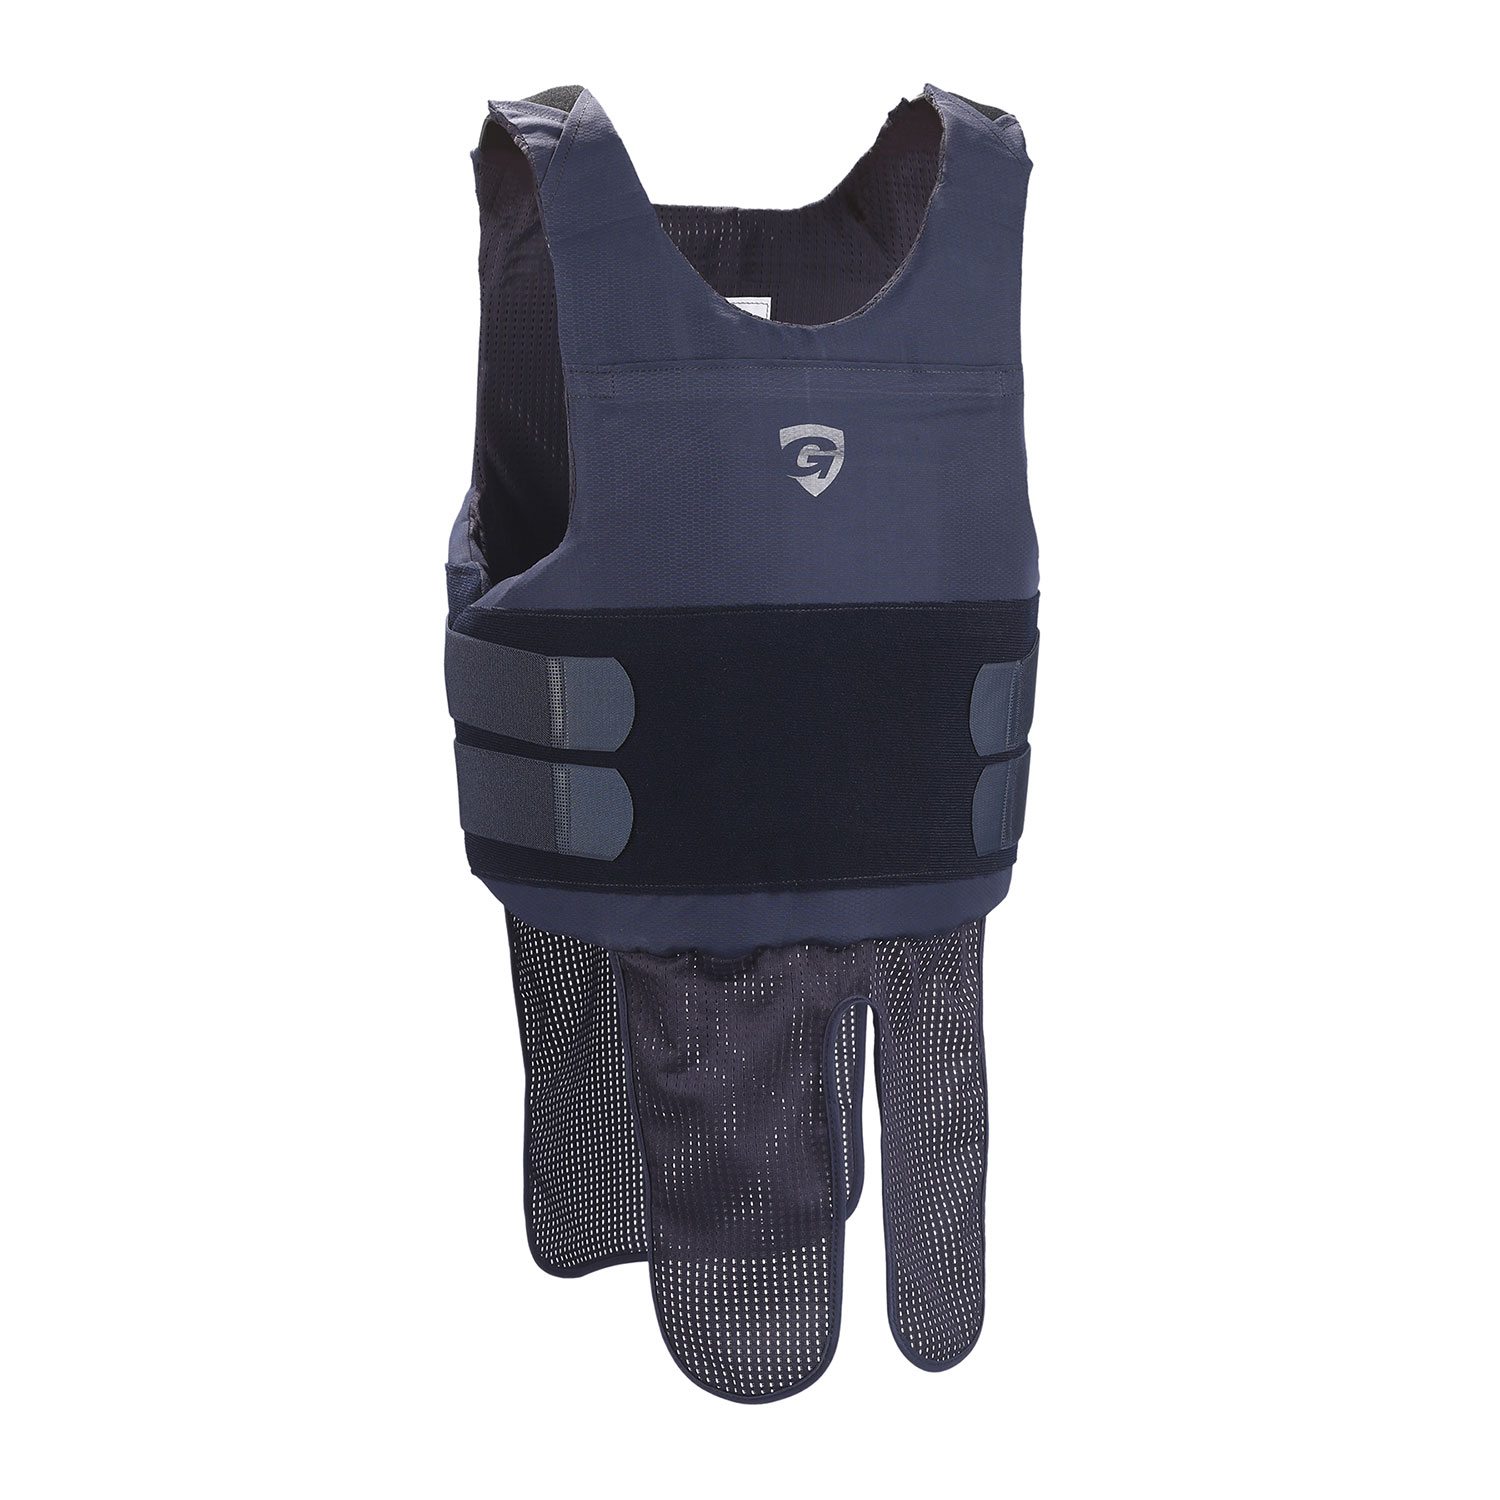 Galls G-Force Level IIIA Concealable Ballistic Vest